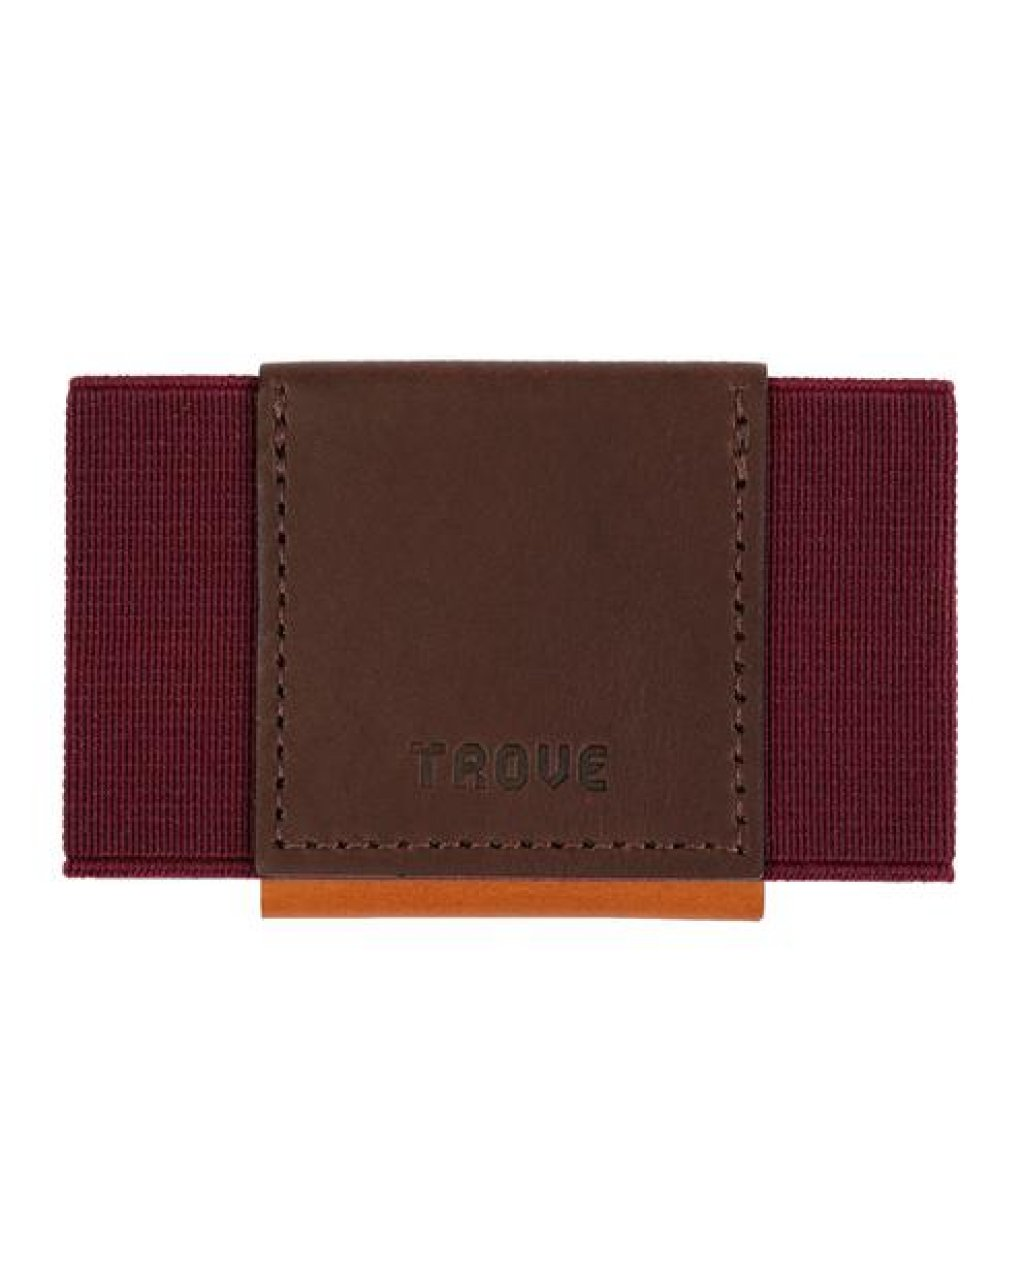 Autumn Trove Wallet